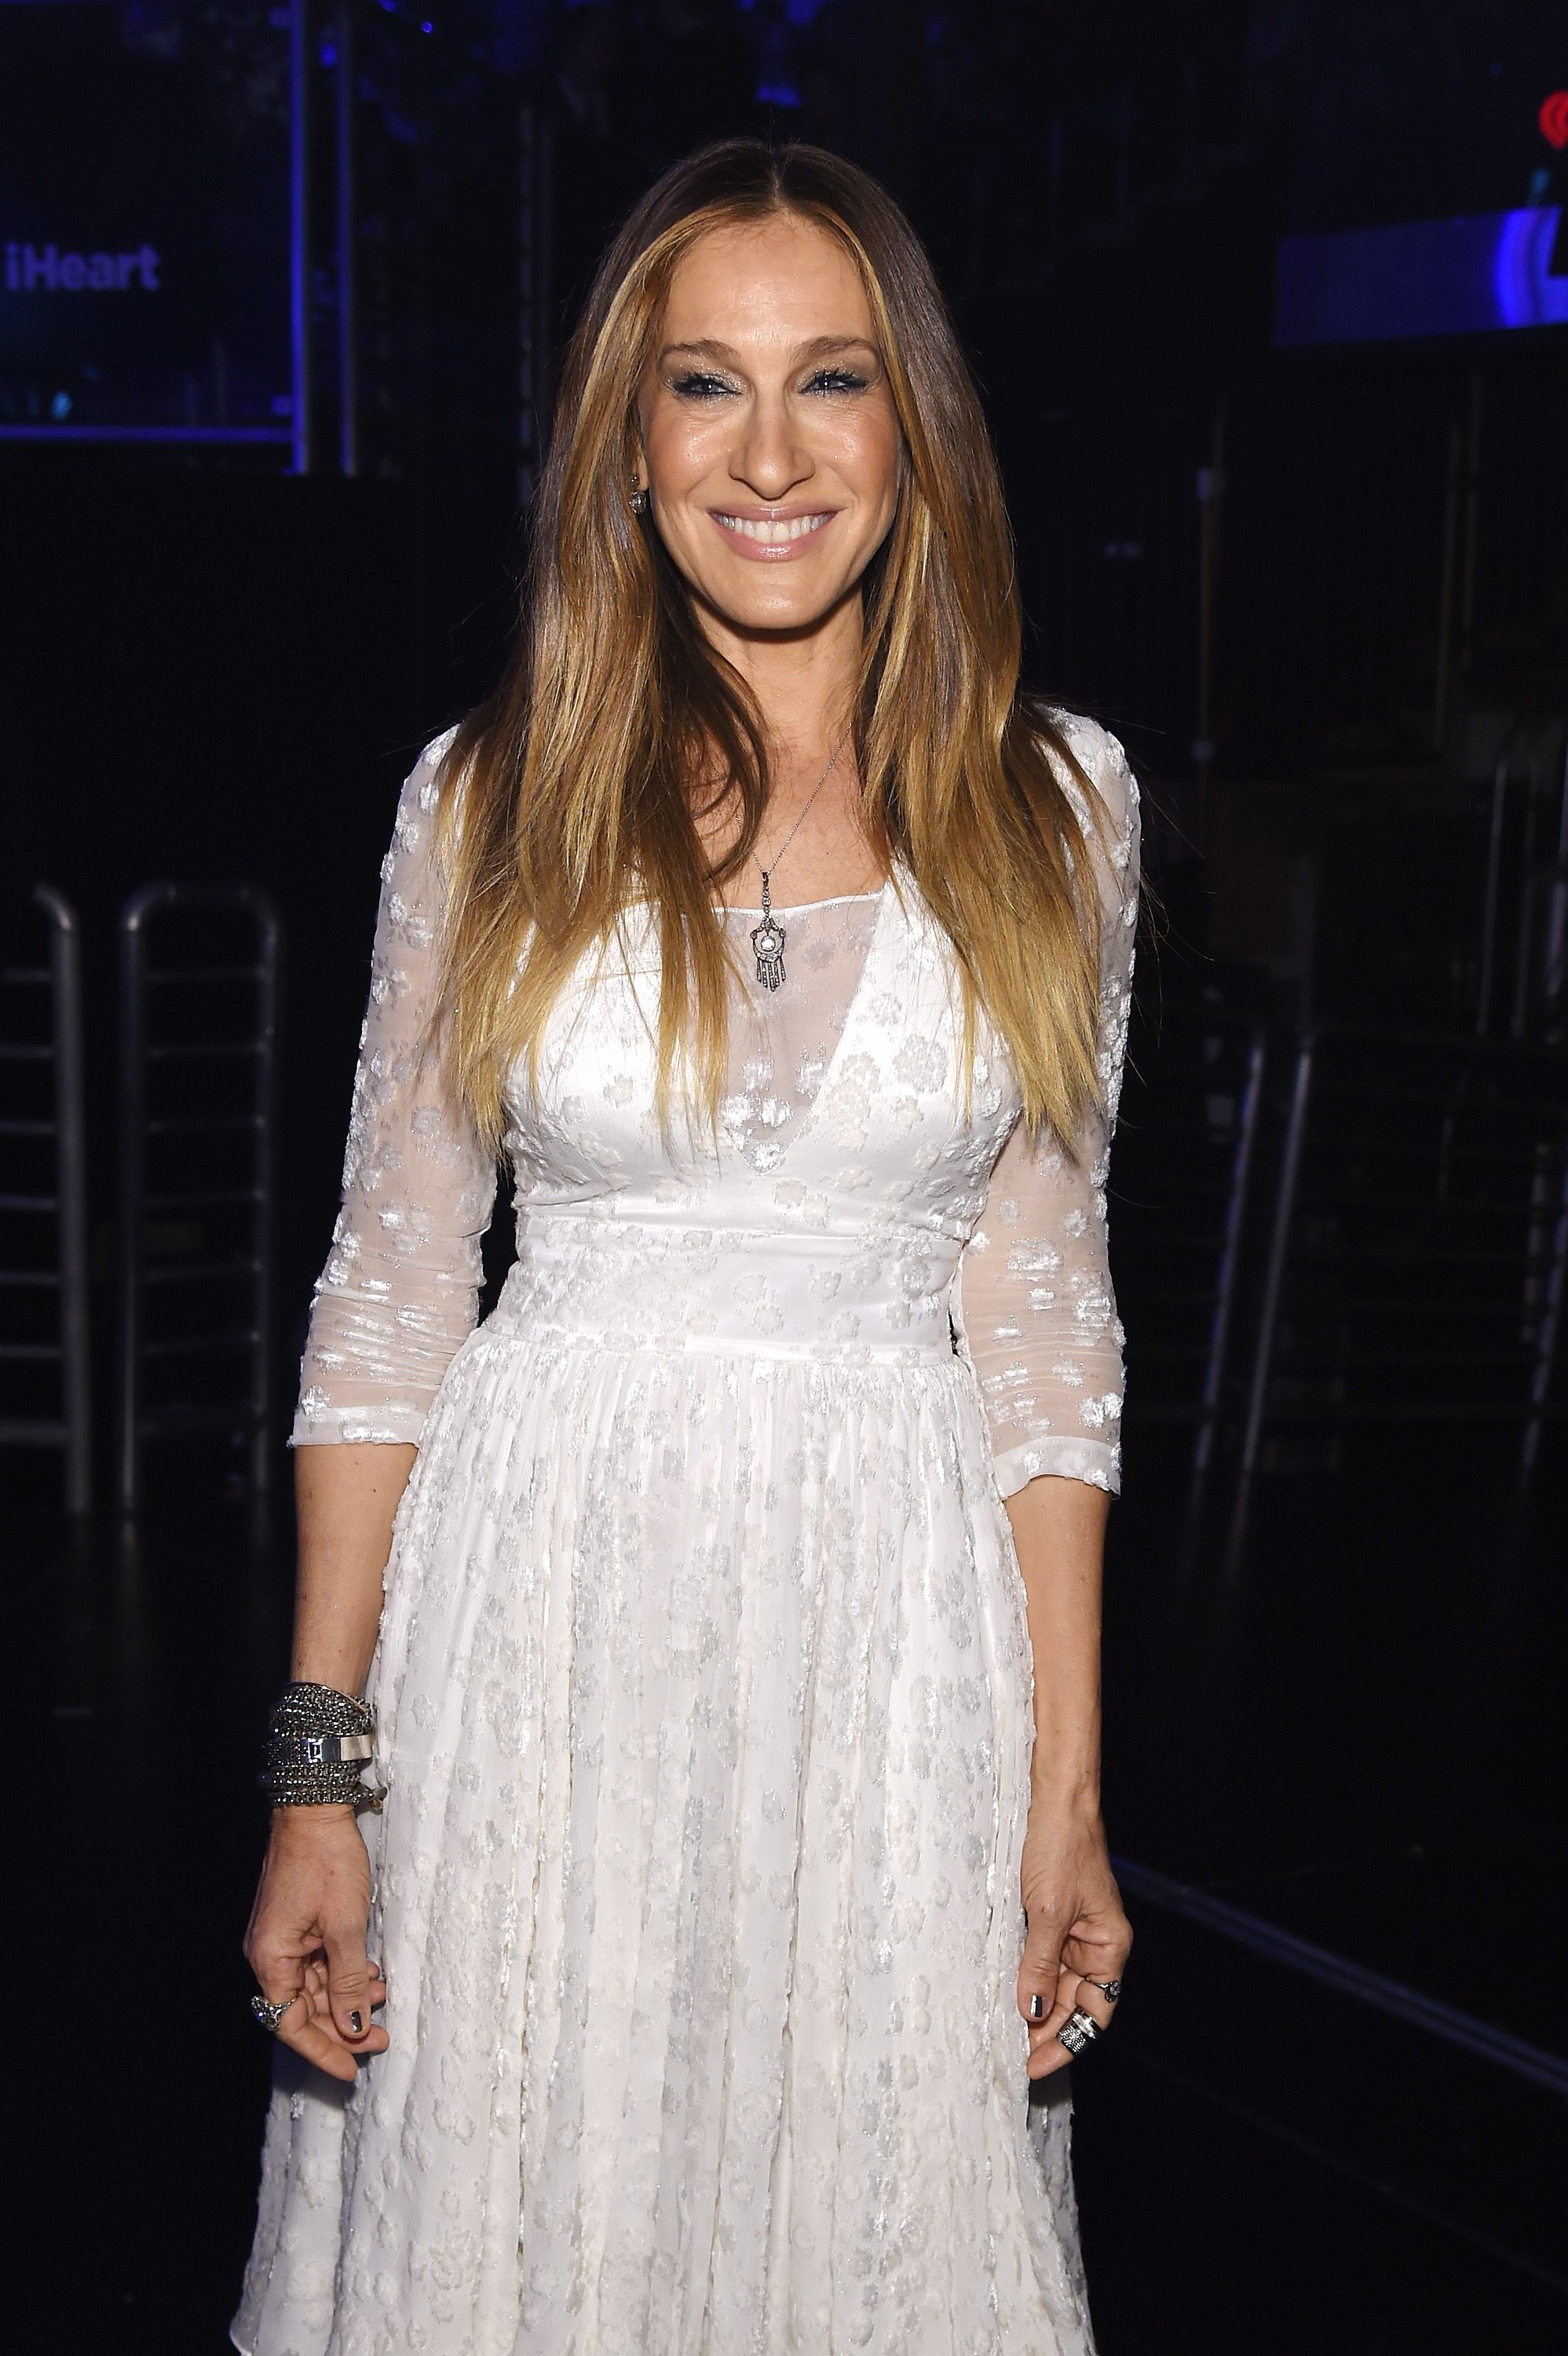 Sarah Jessica Parker backstage at the iHeartRadio Jingle Ball at Madison Square Garden on December 12, 2014, in New York City | Photo: Jamie McCarthy/Getty Images